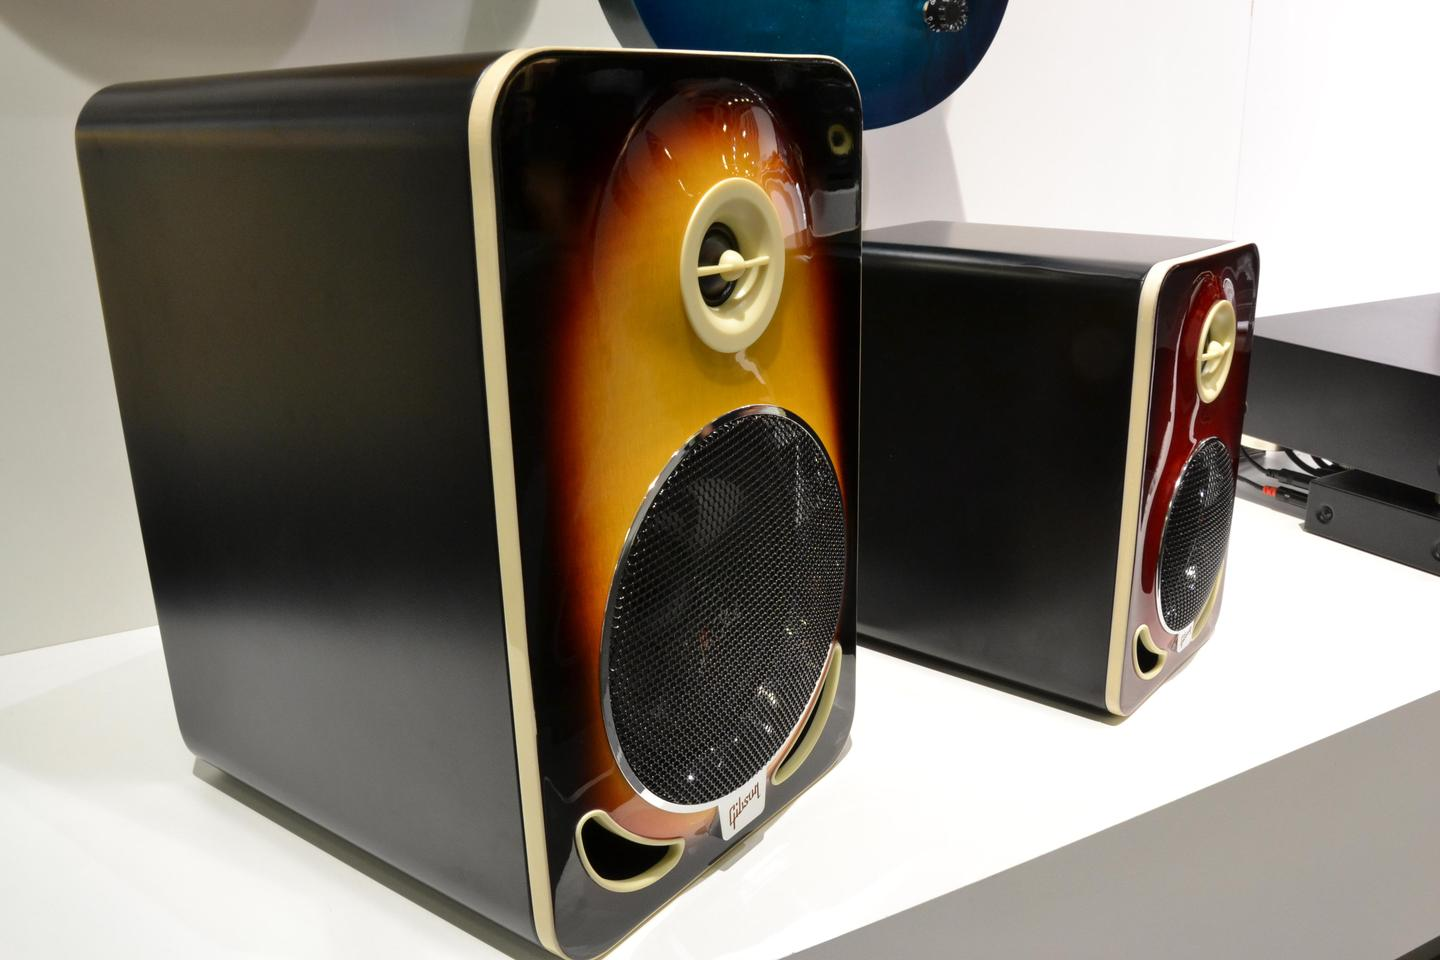 The Les Paul 4 and Les Paul 6 Reference speakers at IFA 2014 (Photo: Paul Ridden/Gizmag)